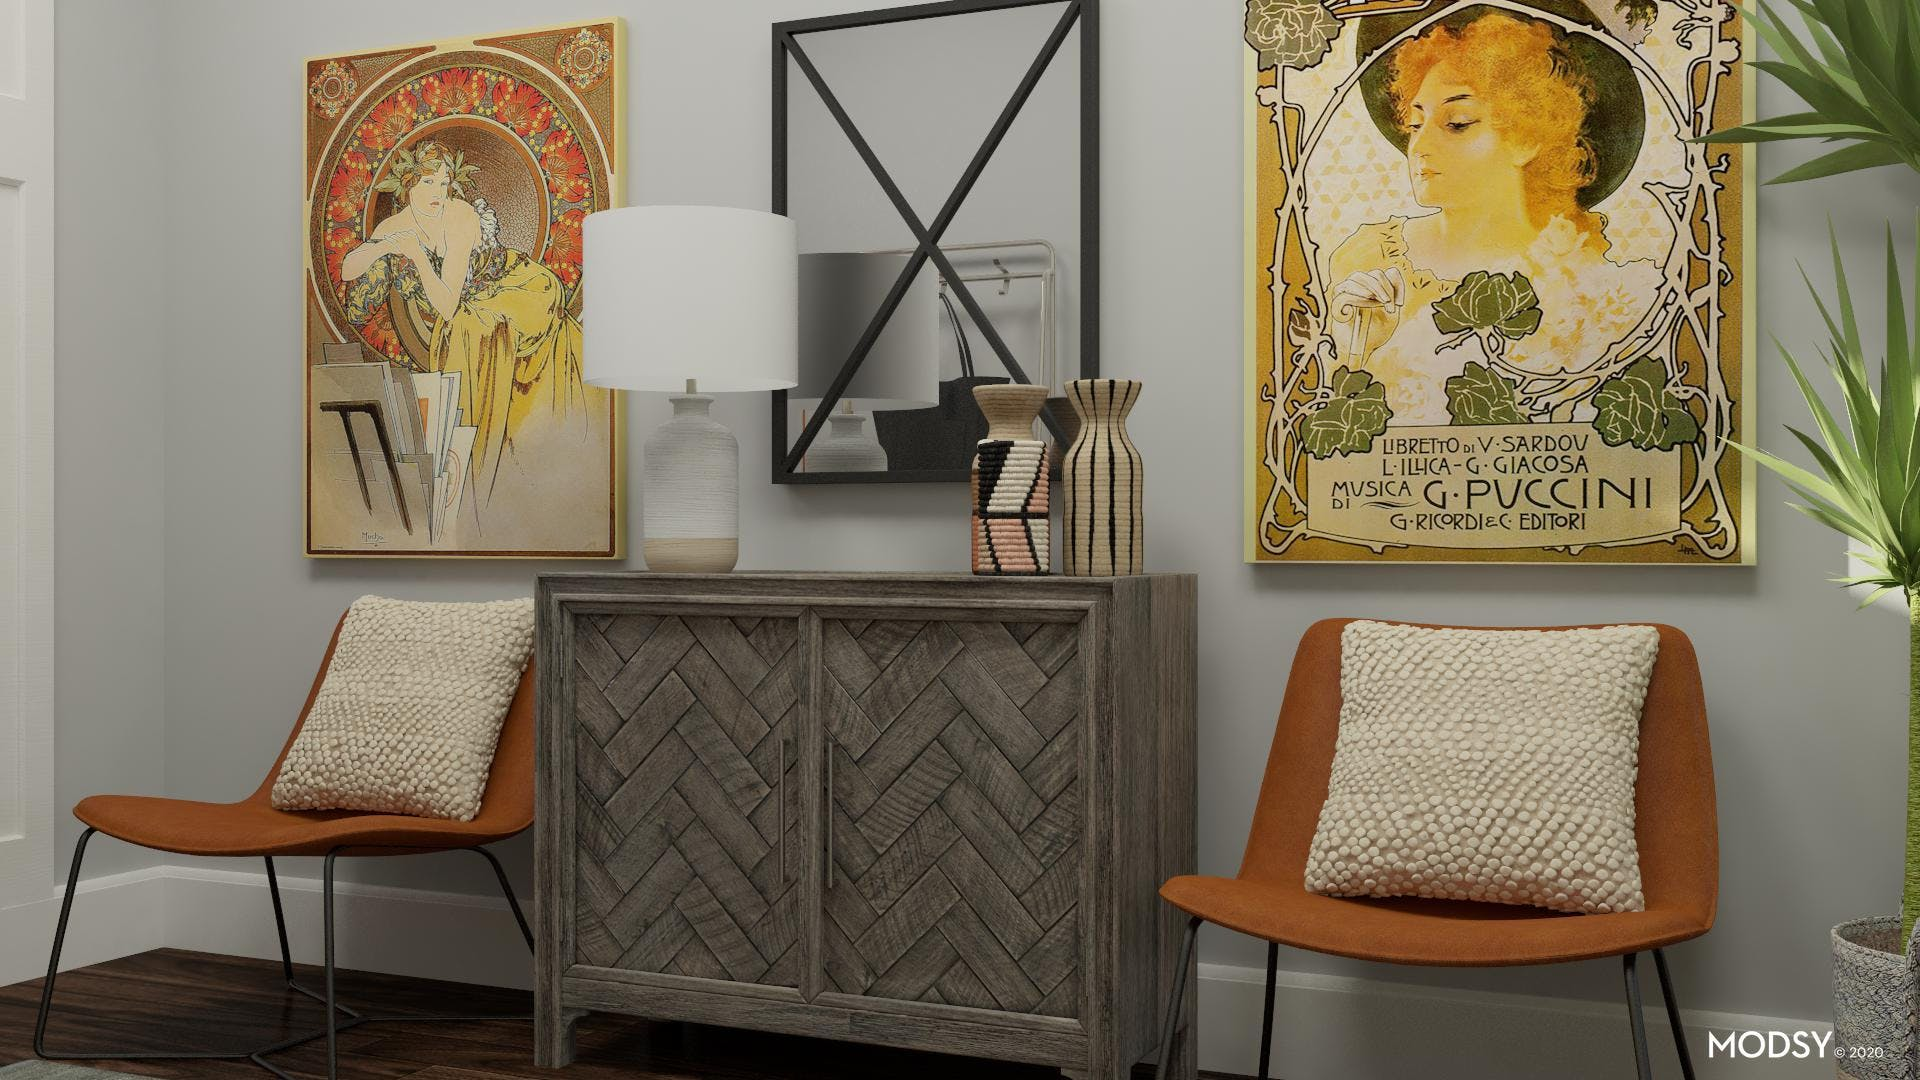 Vintage Art and Seating Nook